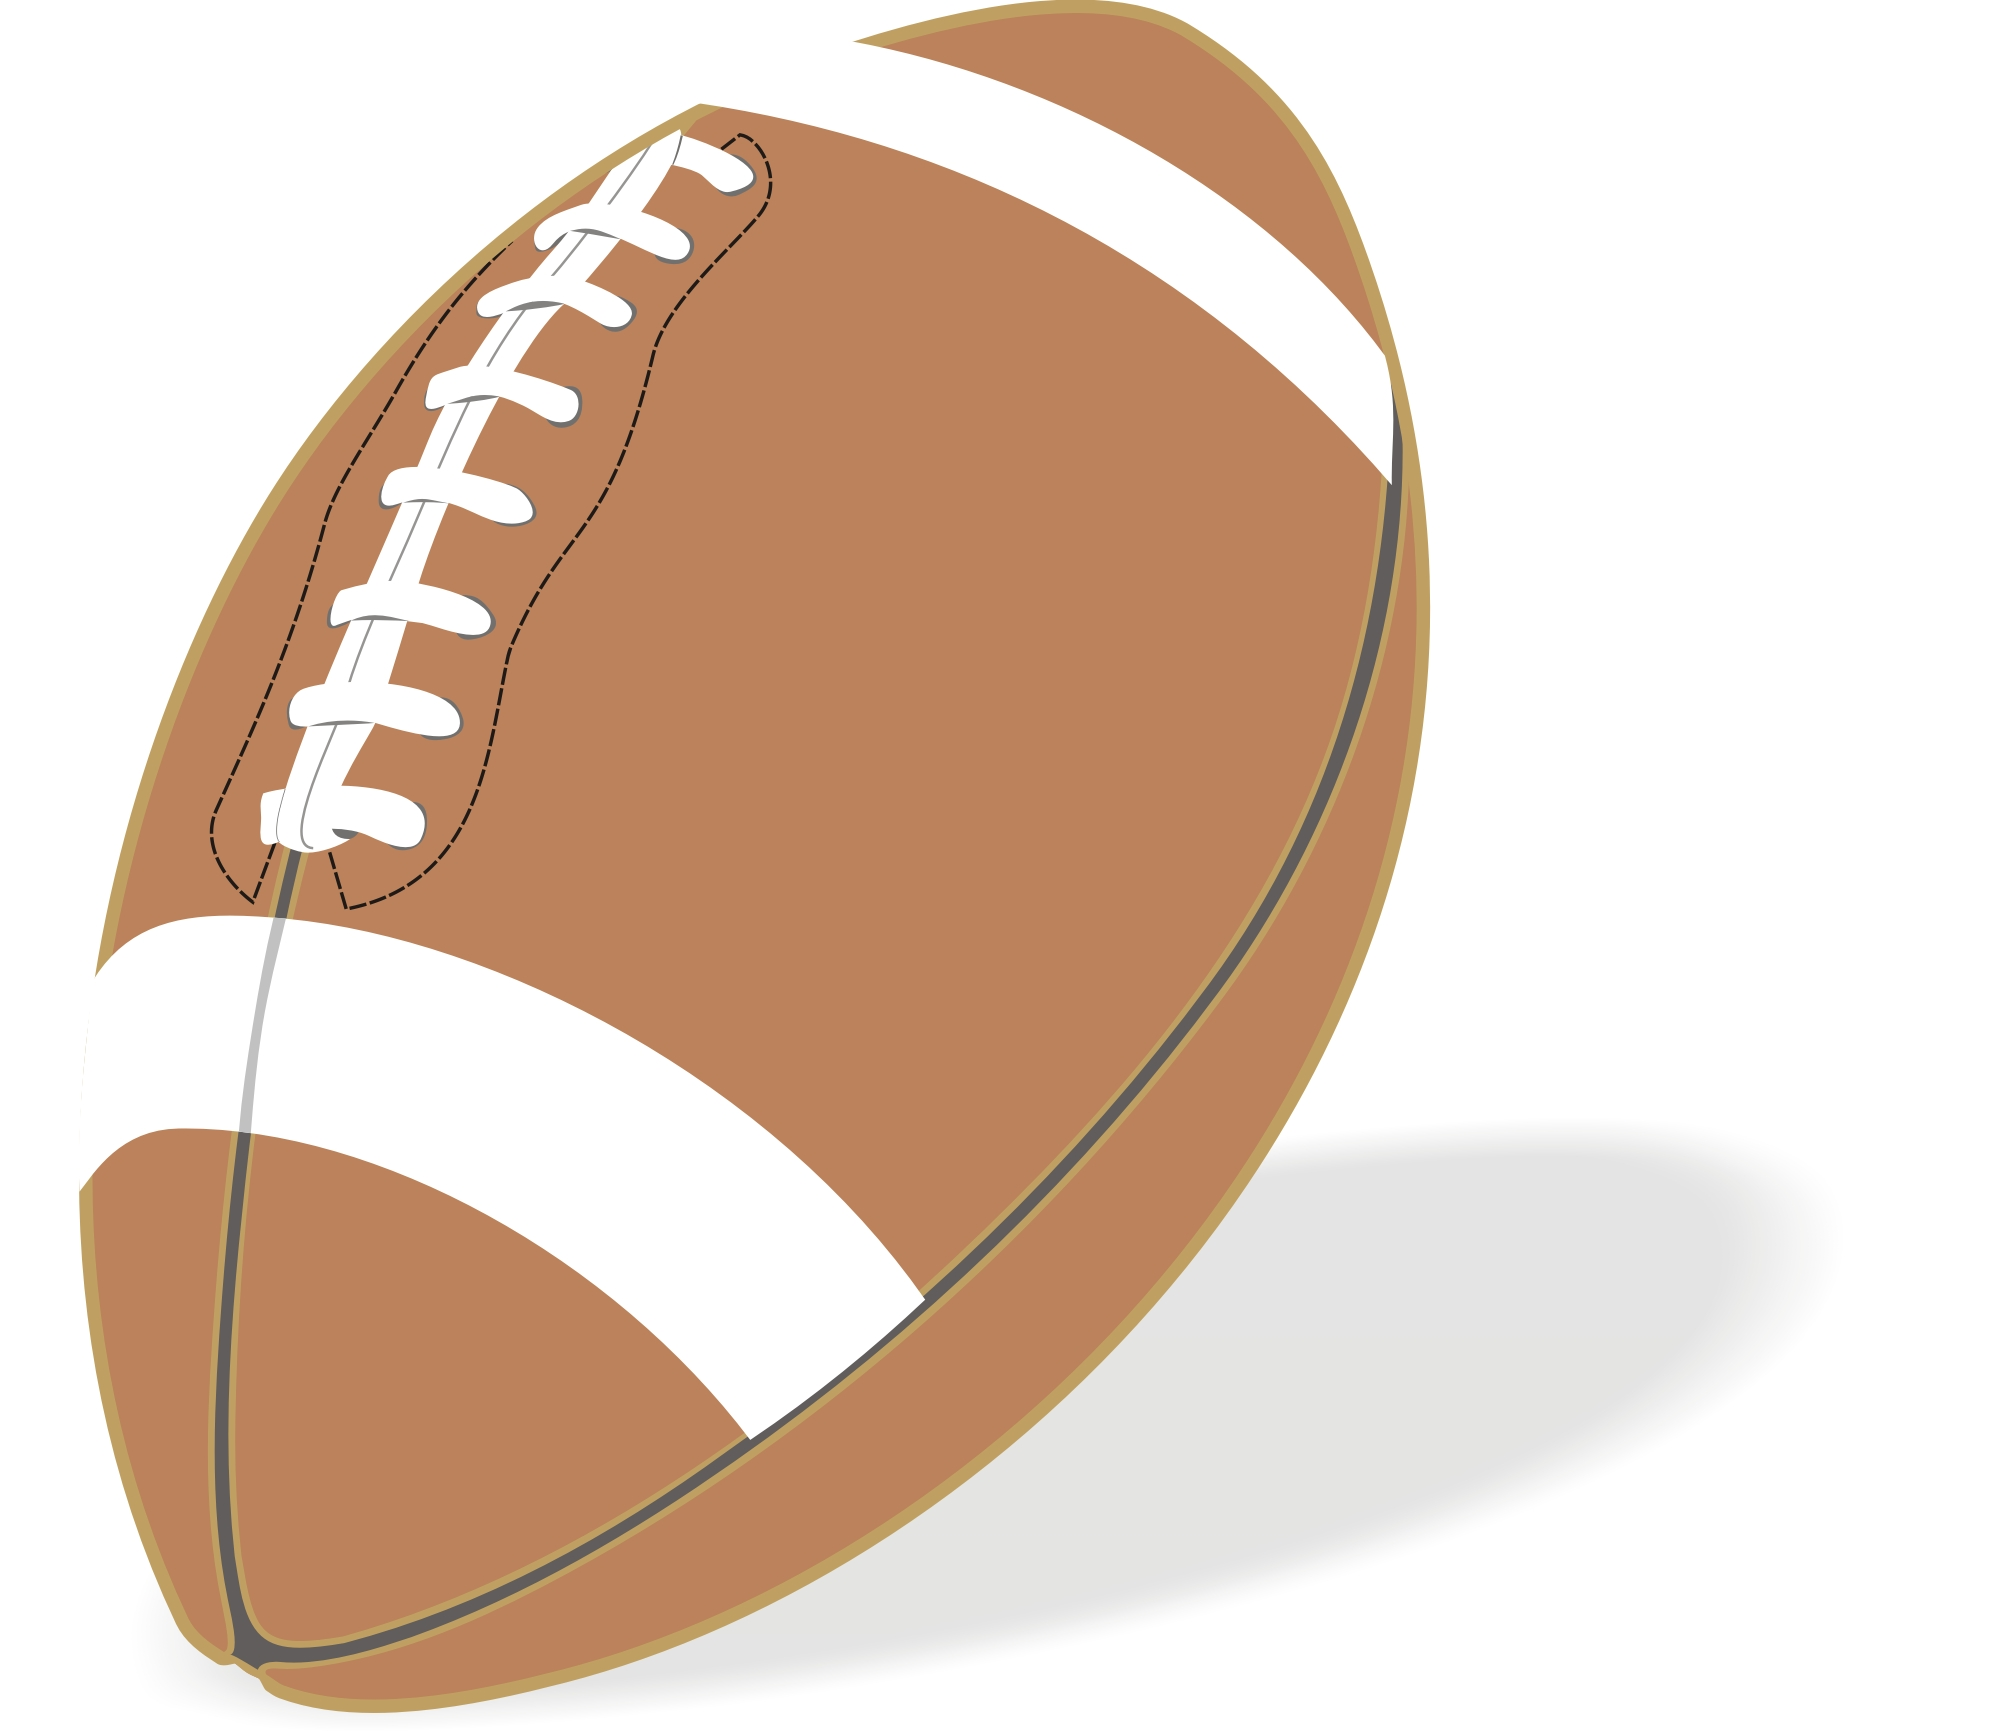 Football Free Images At Clker Com Vector-Football Free Images At Clker Com Vector Clip Art Online Royalty-12